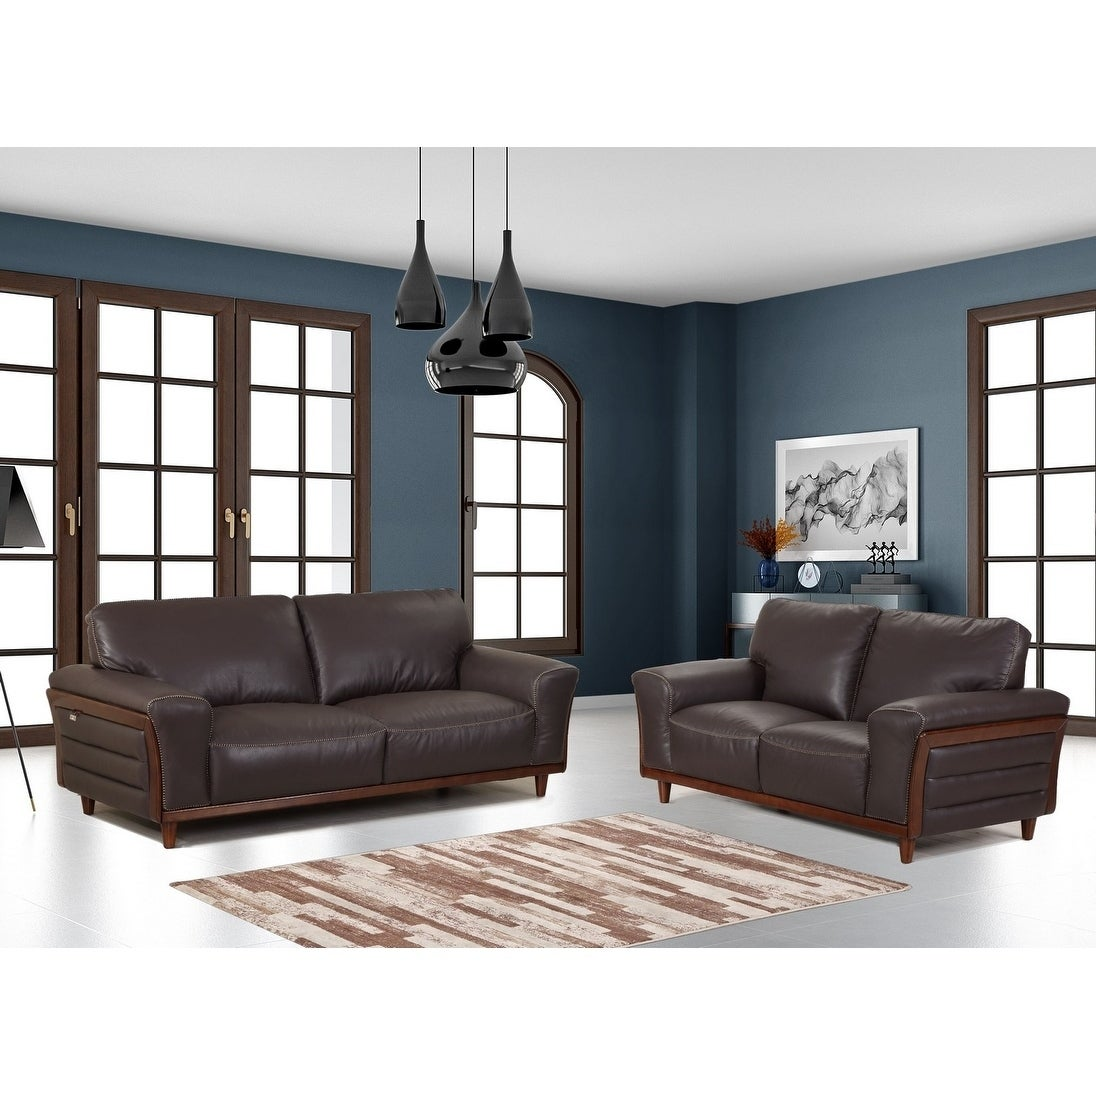 Top Grain Leather Wood Trim Living Room